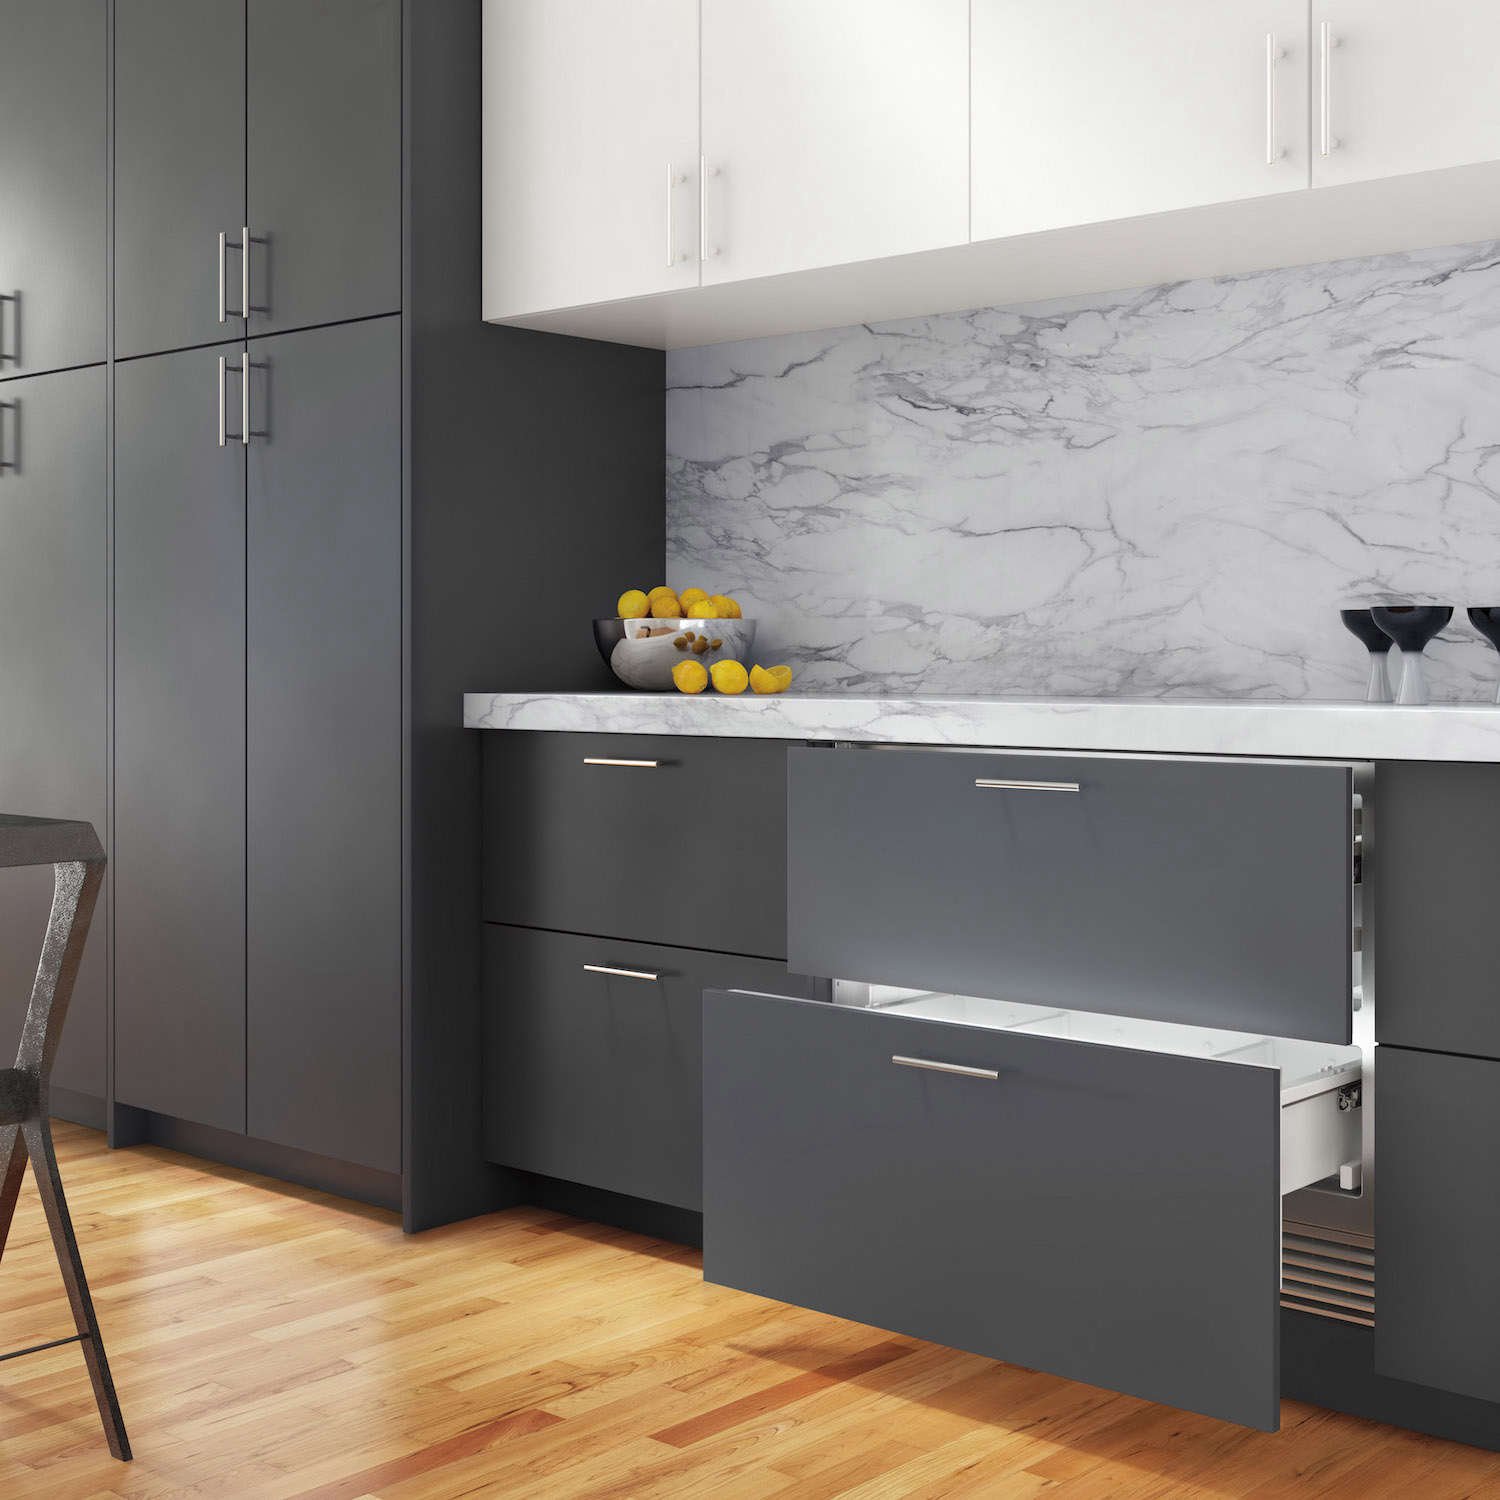 10 Easy Pieces Choosing An Undercounter Refrigerator The Subzero 36 Inch Designer Refrigerator Drawers are panel ready as shown here in situ; \$4,985 through Subzero dealers.